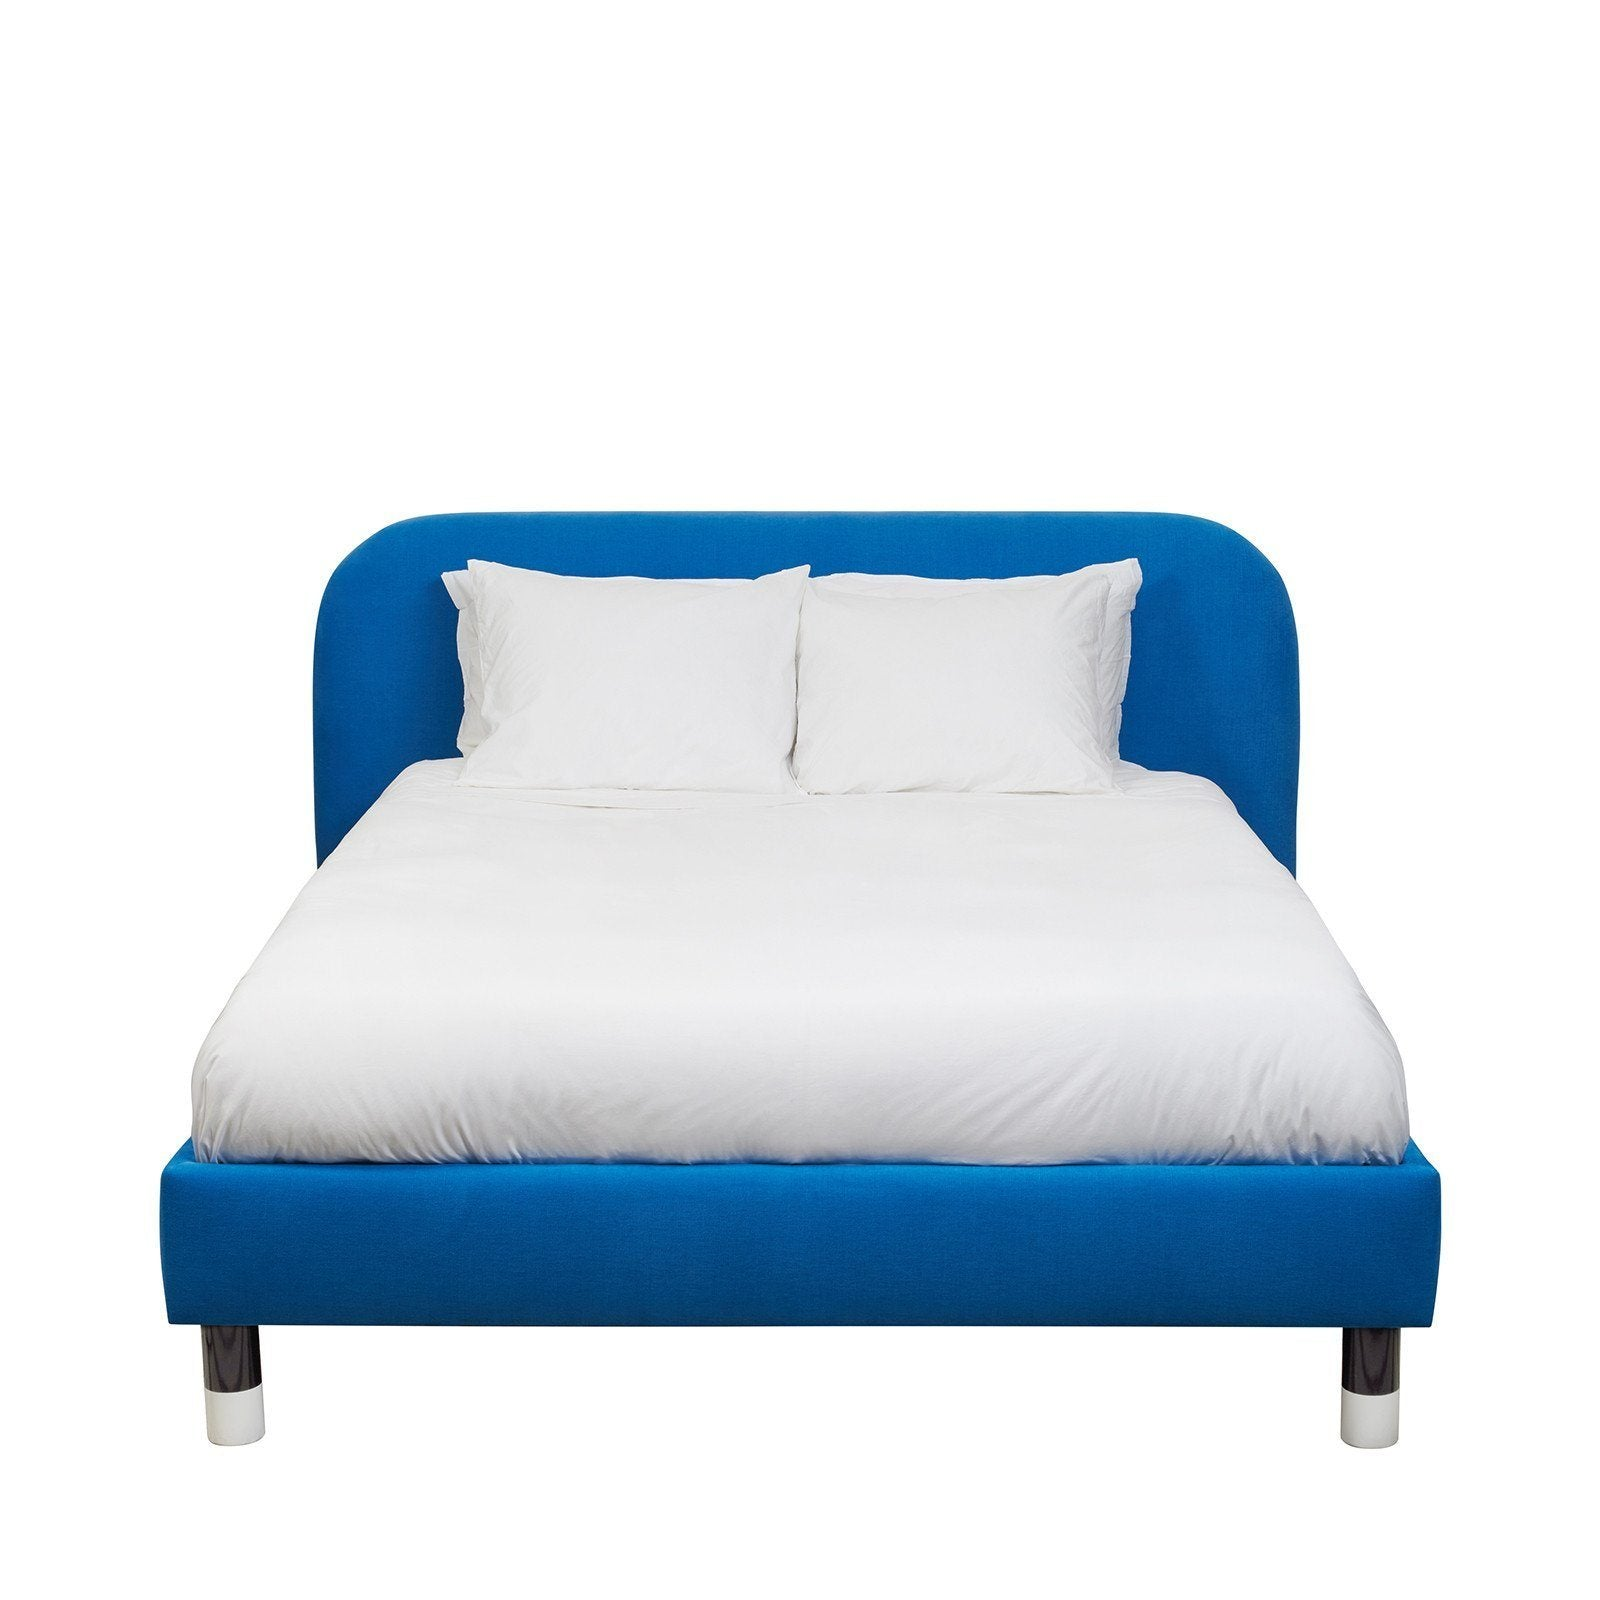 futons angeles stores store bed the local futon los matress of shop san elegant